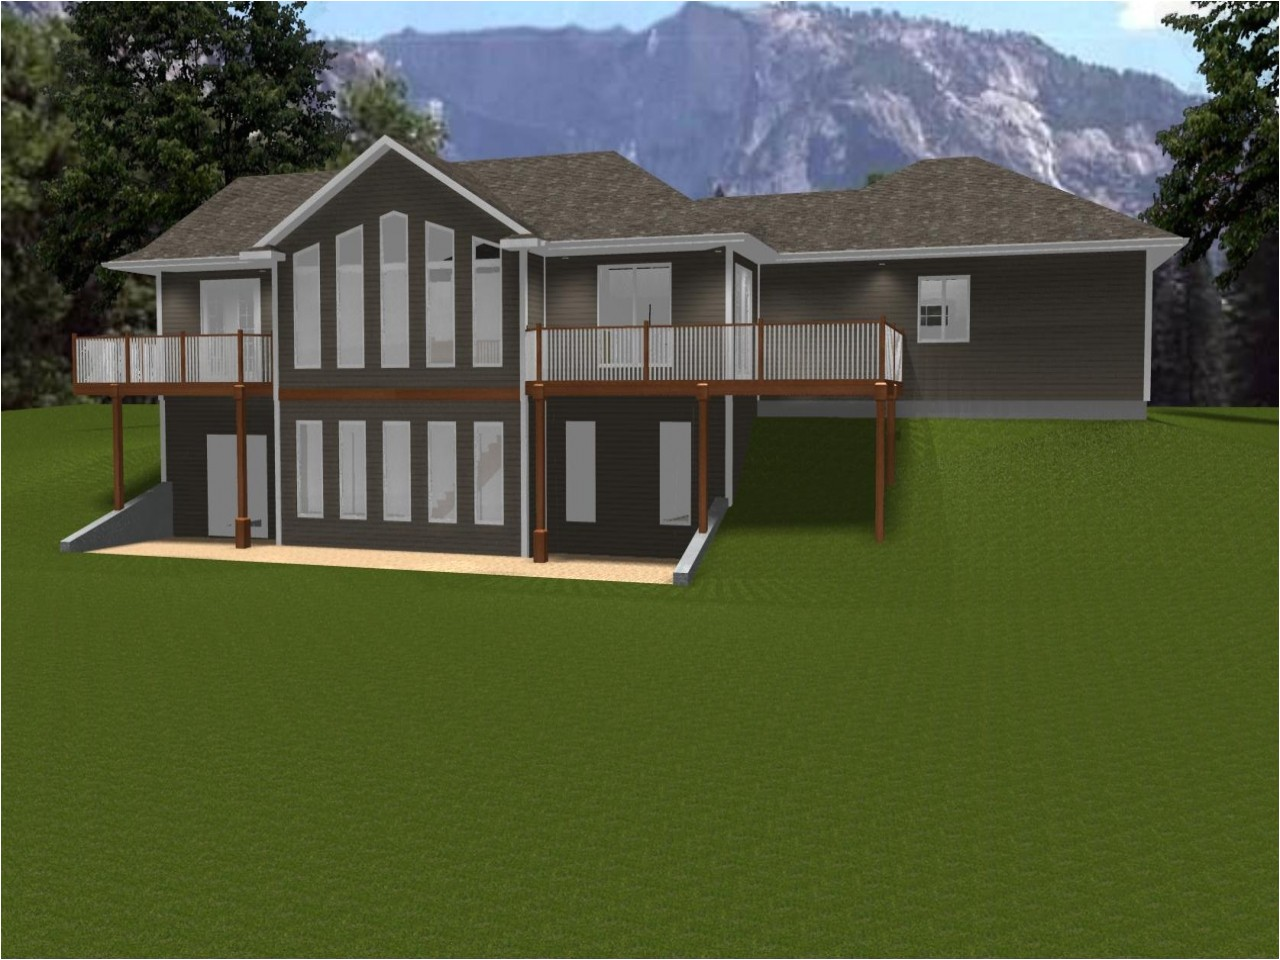 ranch house plans with walkout basement ranch house plans 35598045eb28f77c